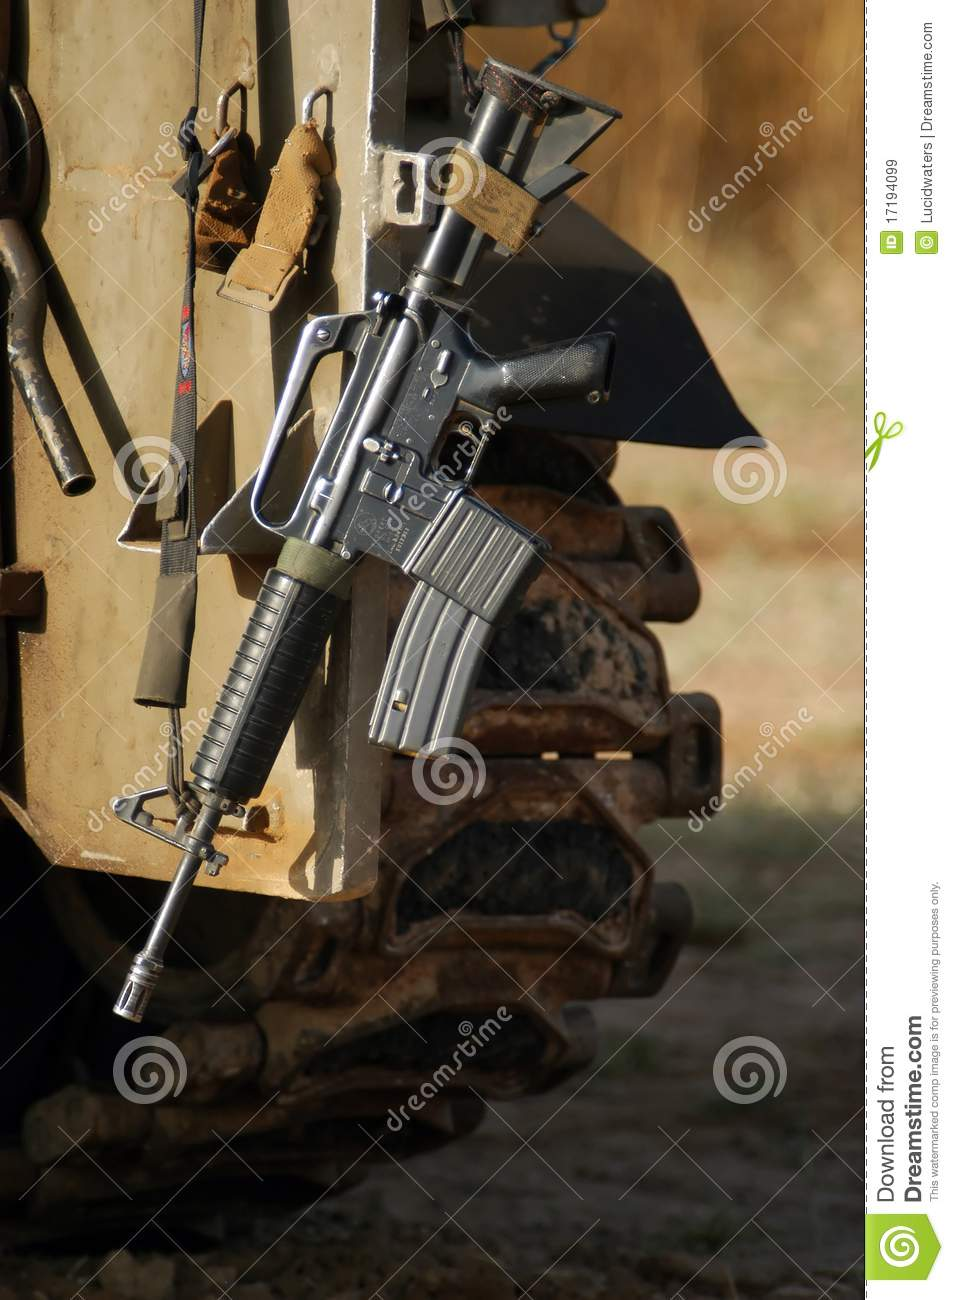 M16 Israel Army Rifle Royalty Free Stock Images - Image: 17194099